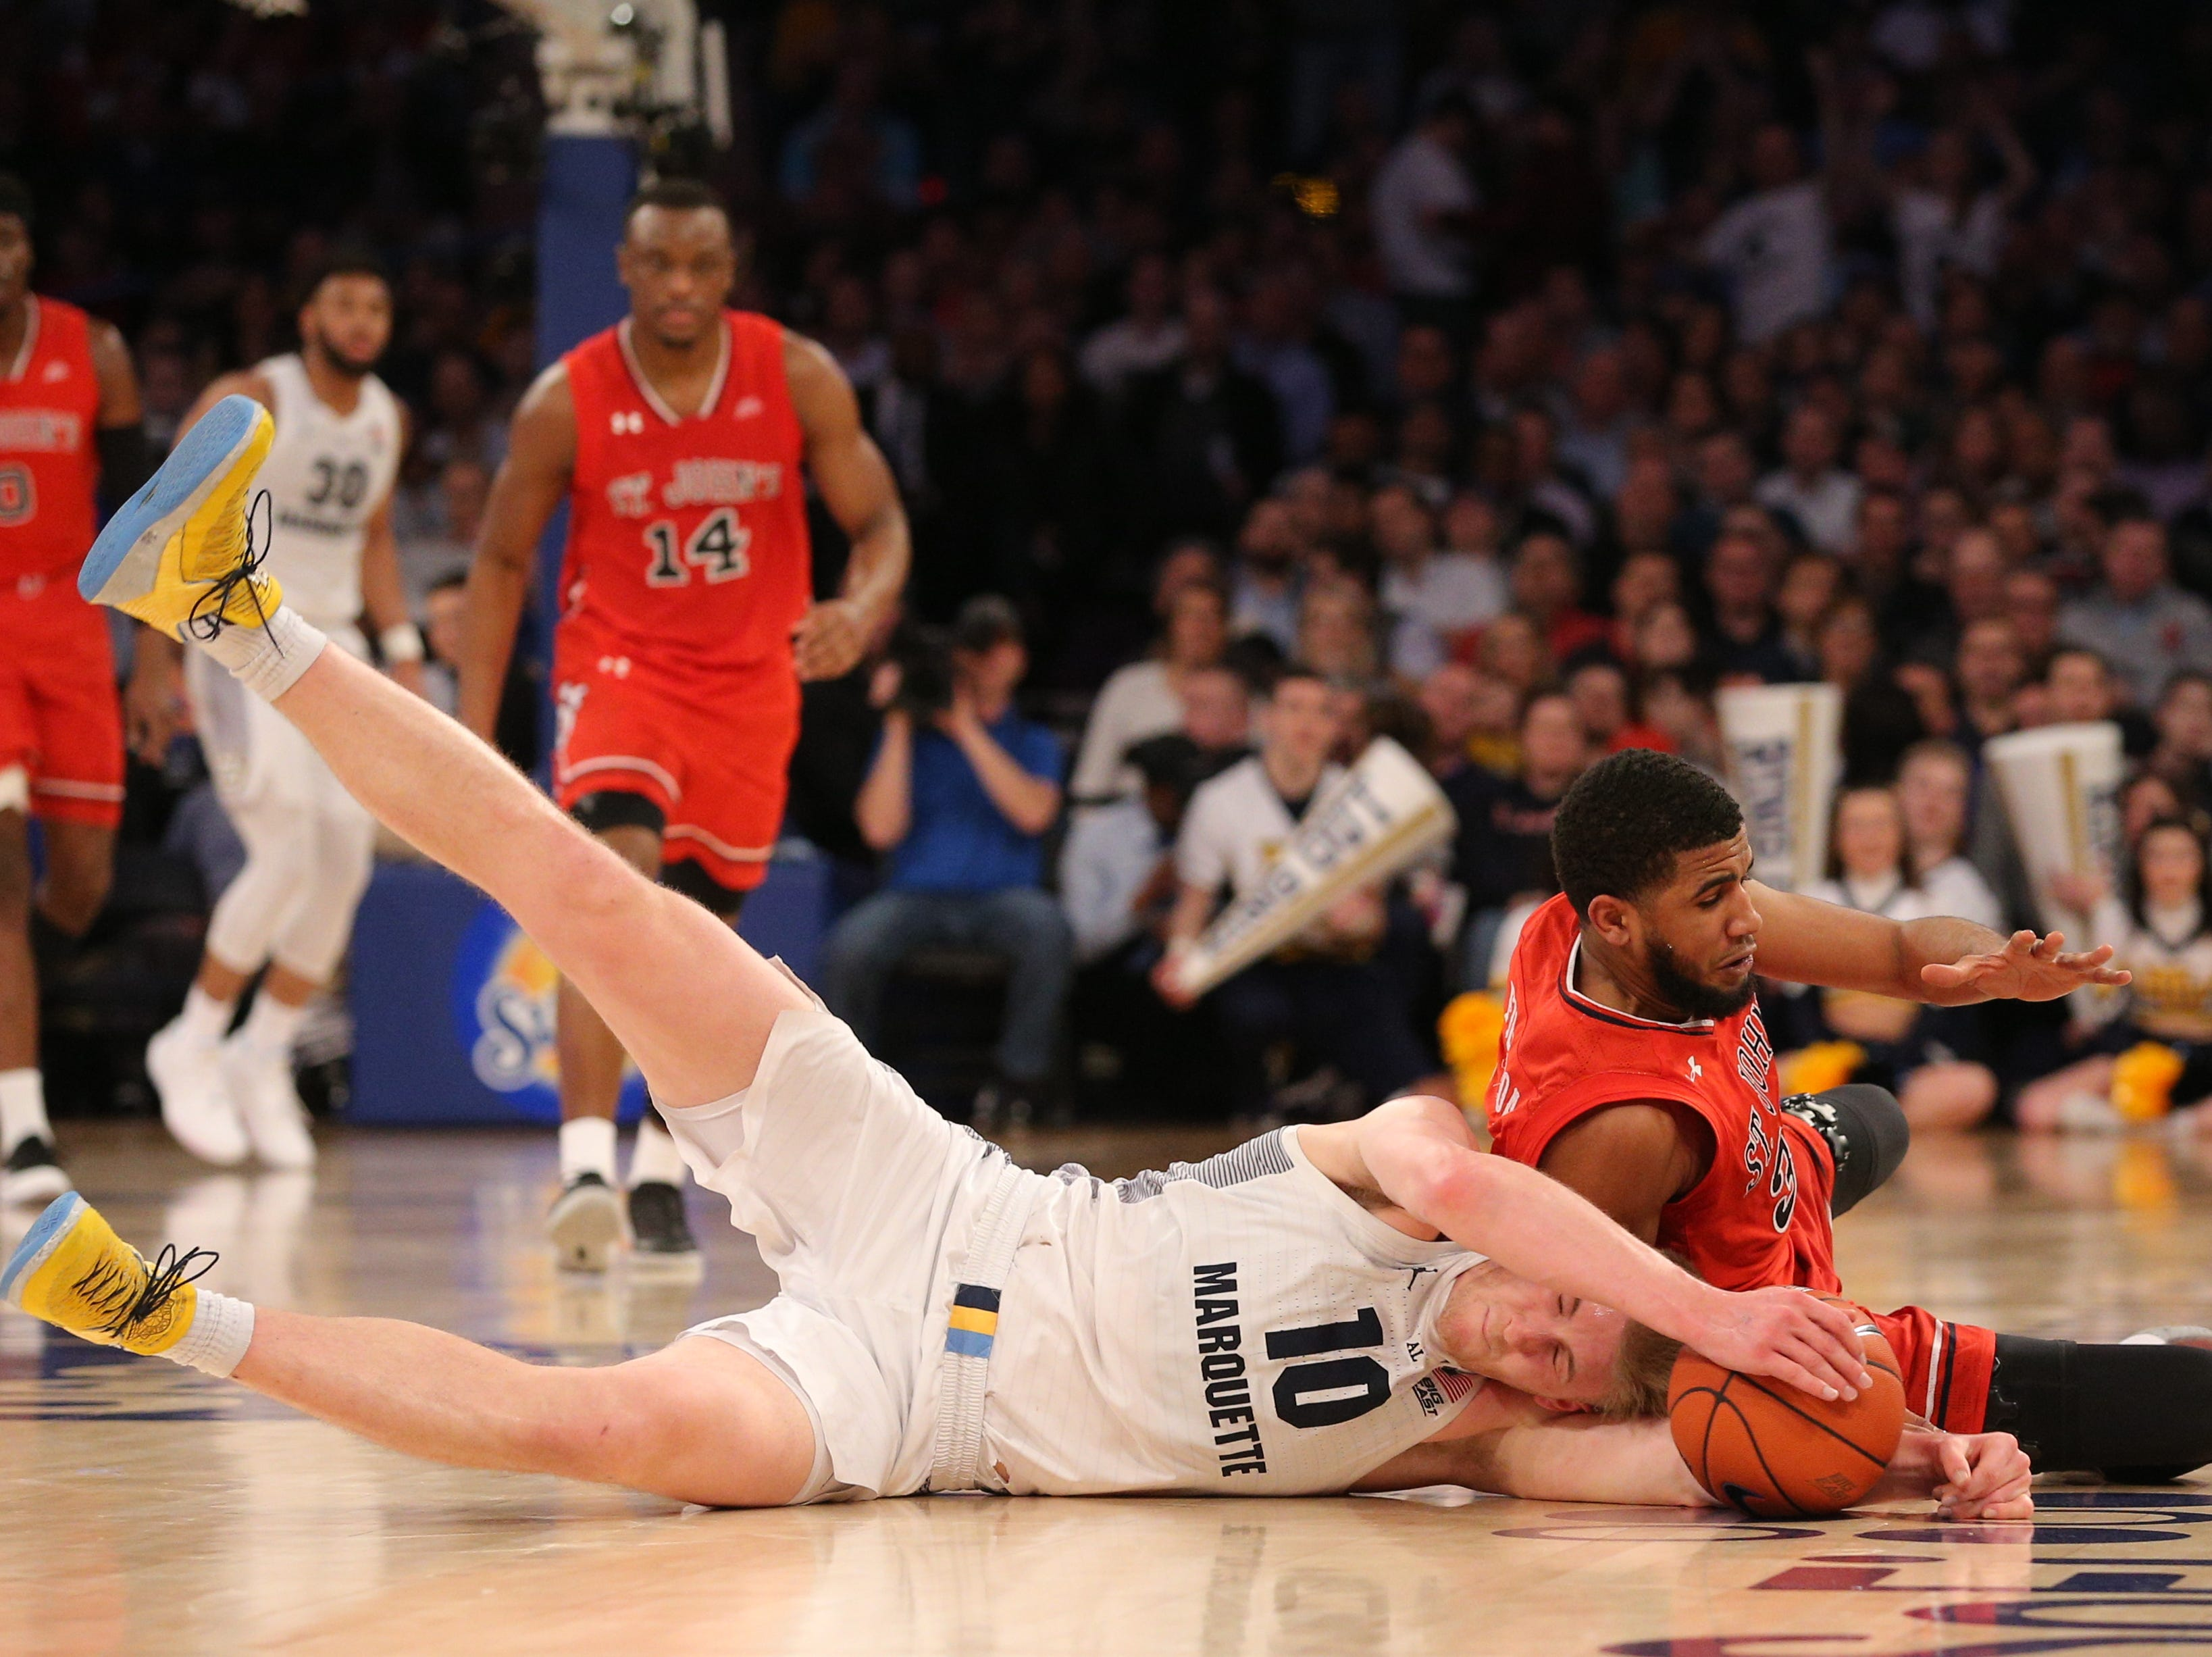 Marquette Golden Eagles guard Sam Hauser  and St. John's Red Storm guard LJ Figueroa go after a loose ball.